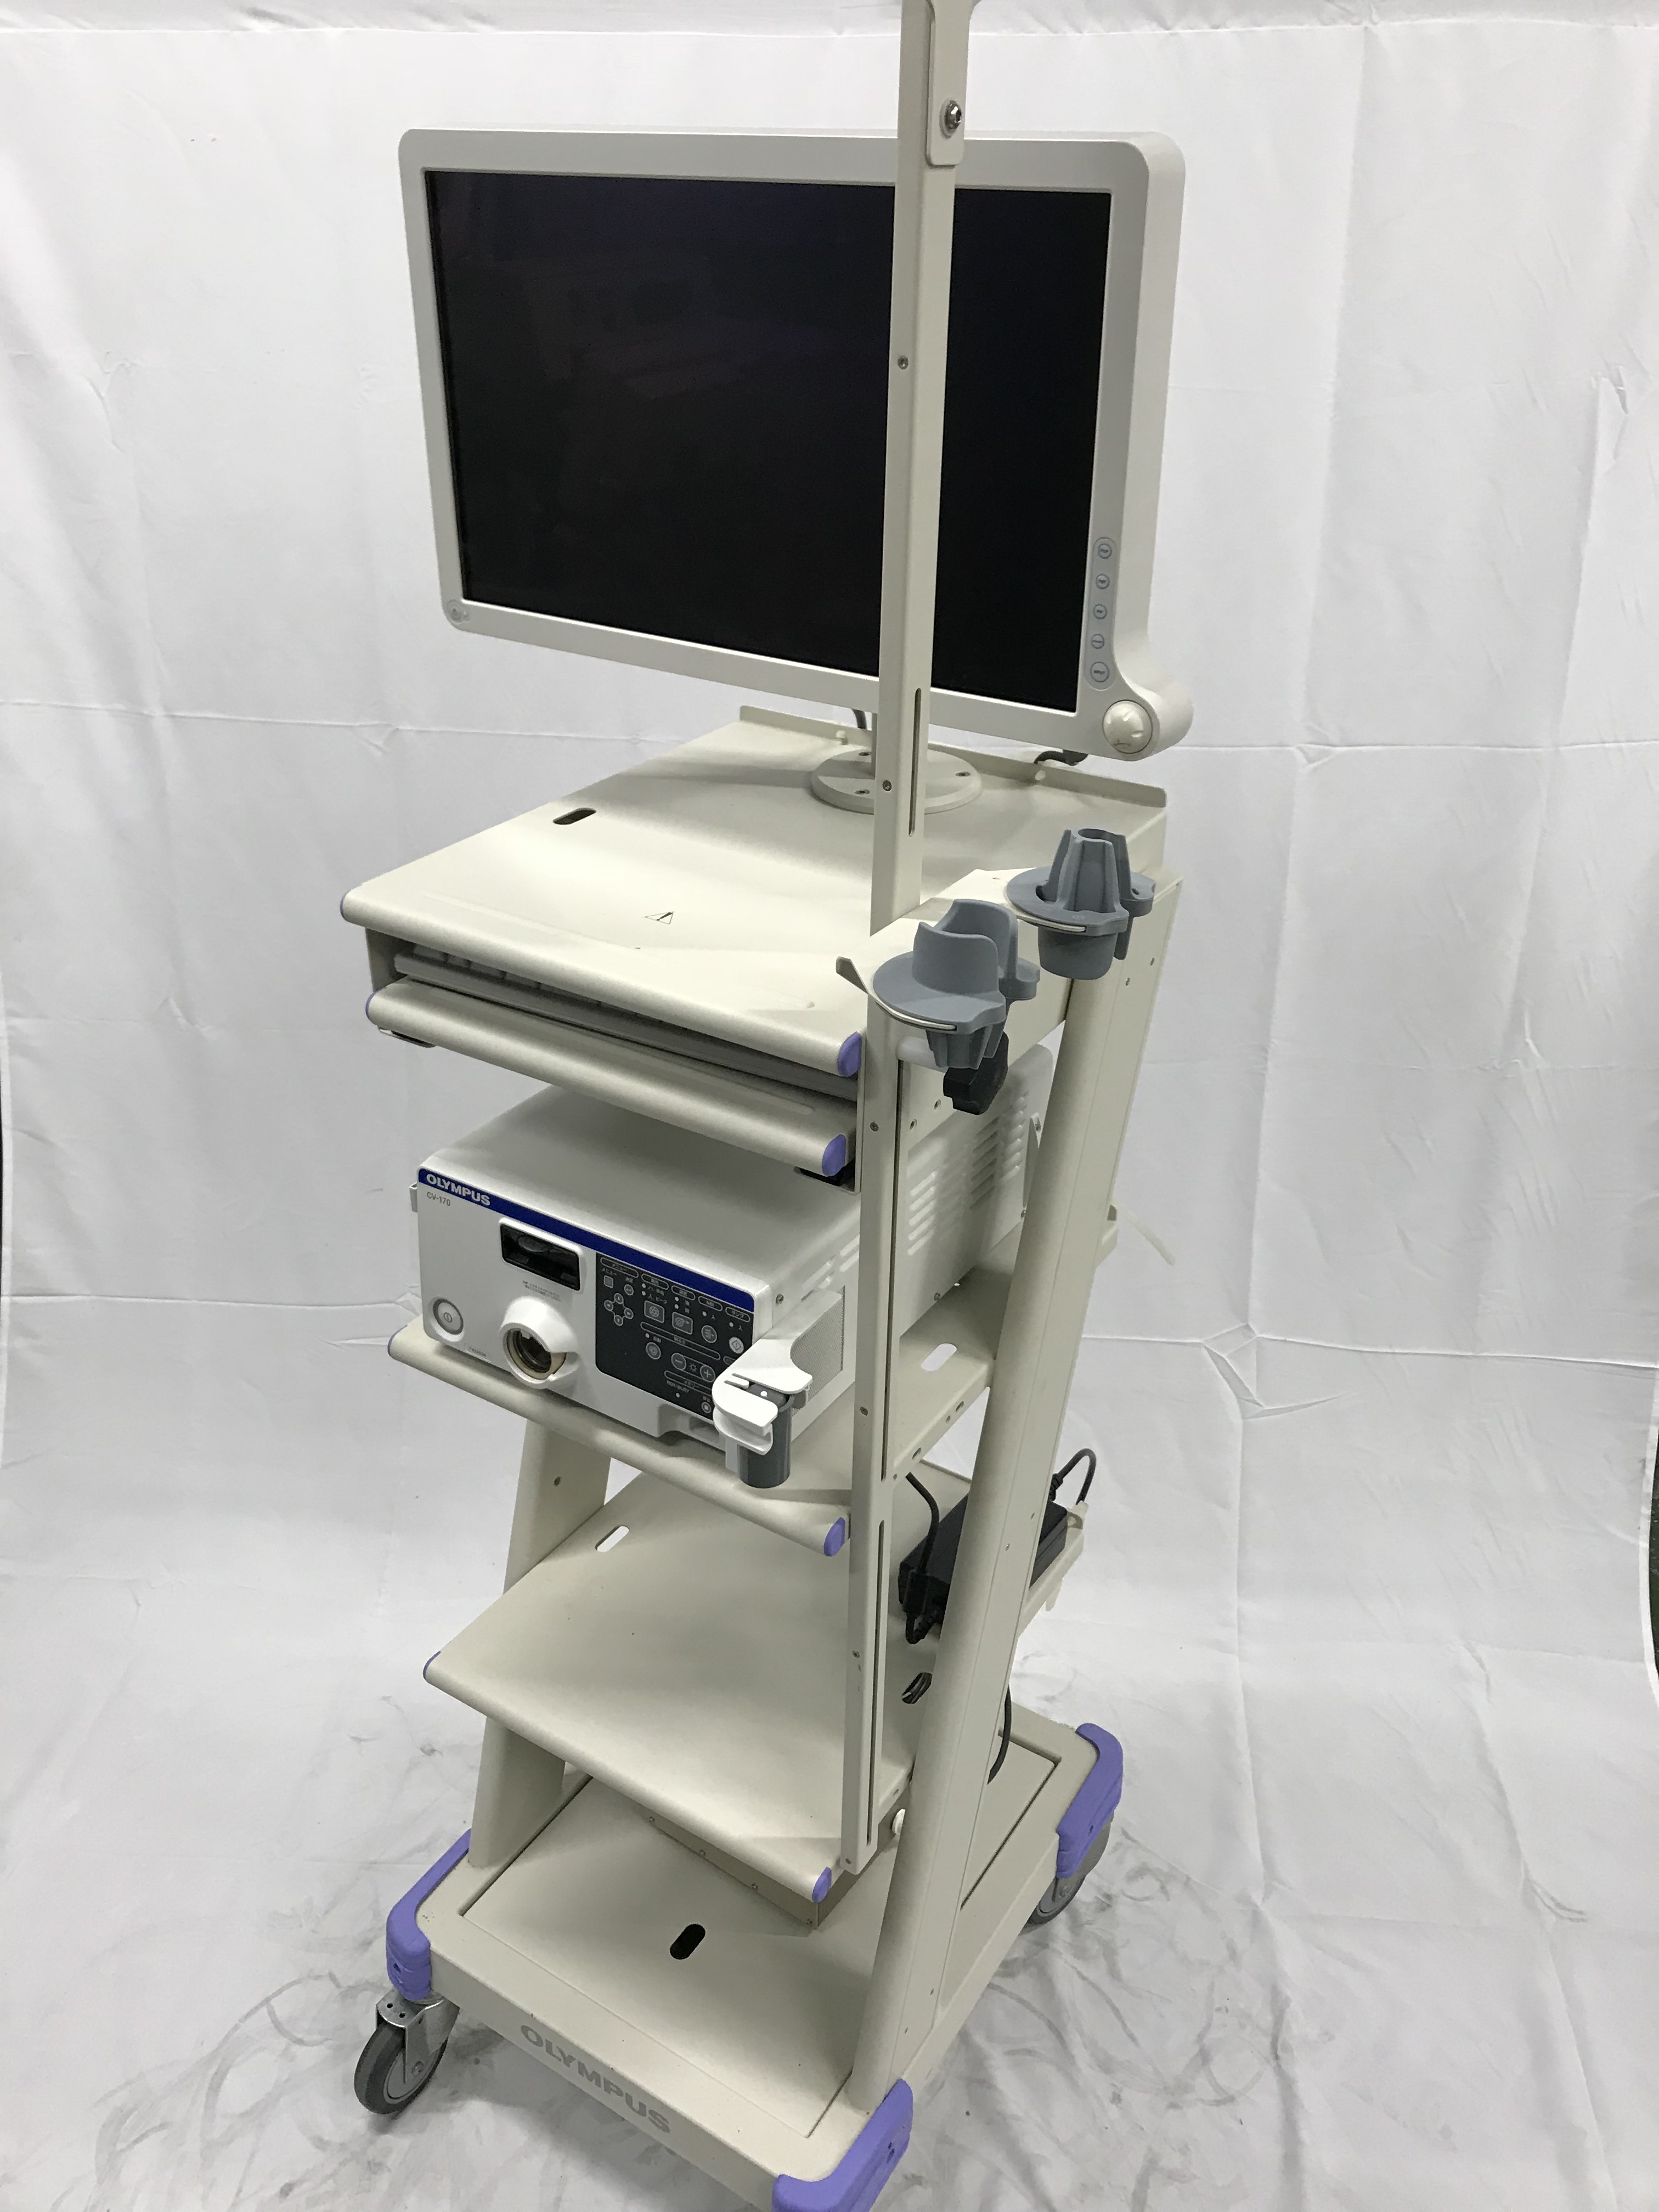 Endoscopy Room Equipment List: Product Detail|Olympus Medical Systems|Endoscopey System